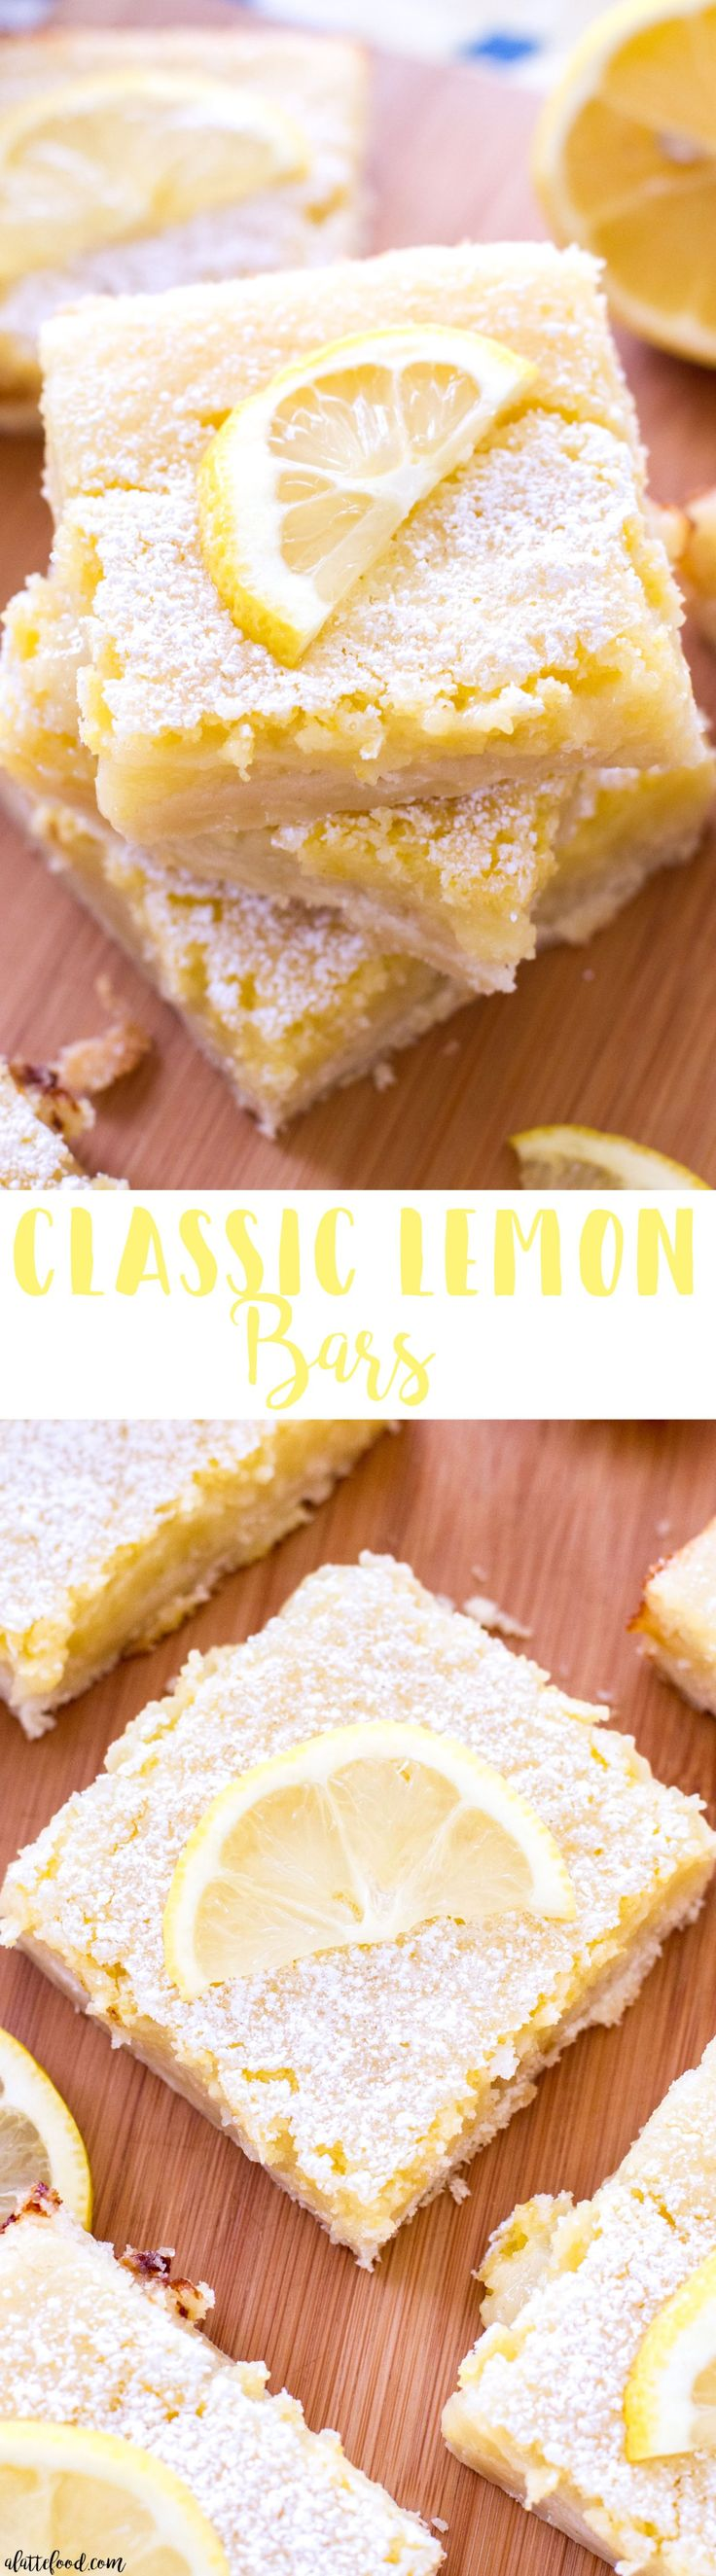 These classic homemade lemon bars have a tangy lemon filling and a sweet shortbread crust! These are the perfect Easter dessert,